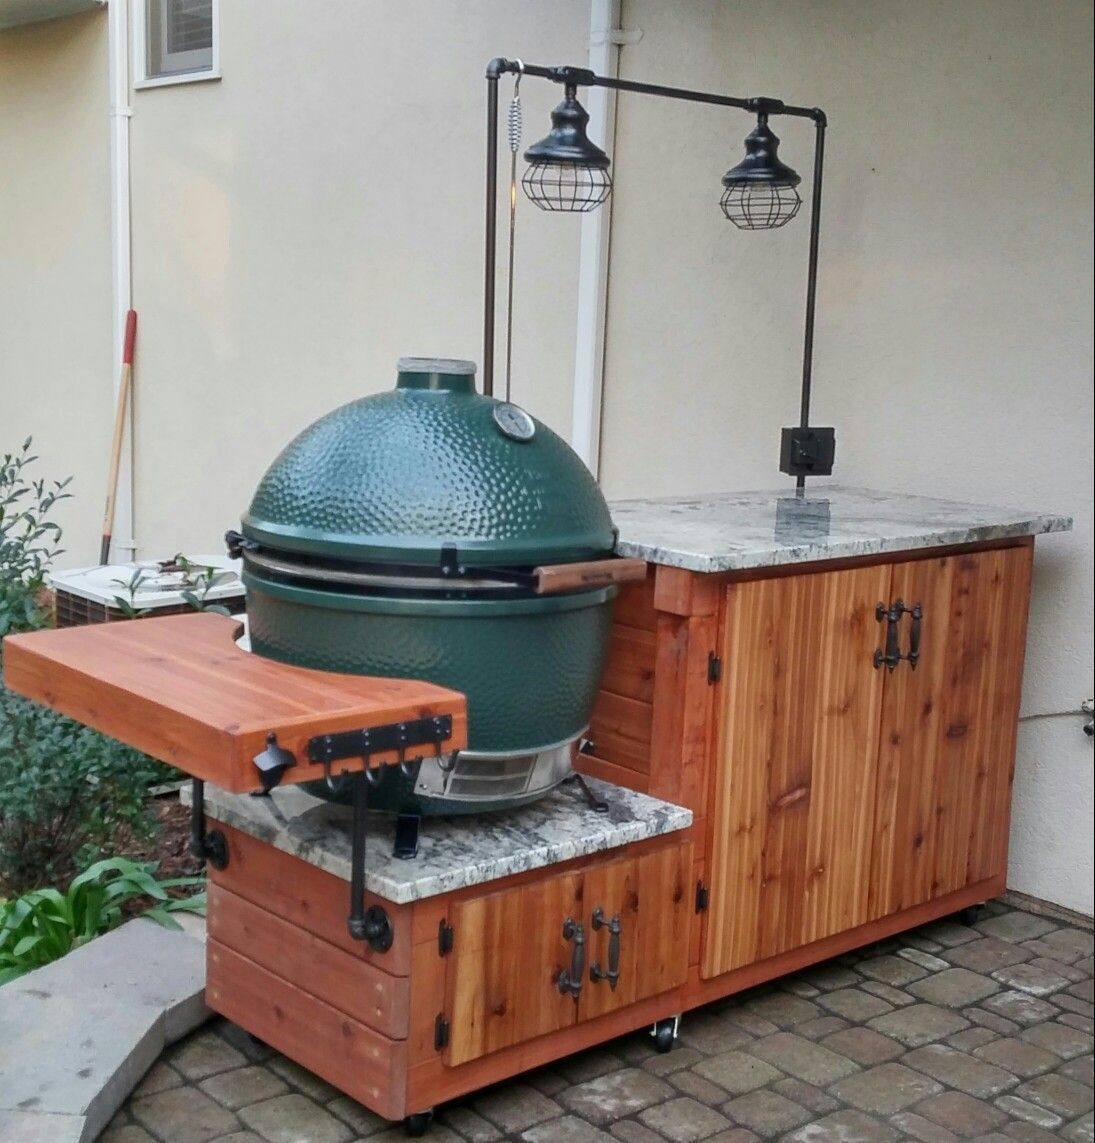 The Best Gas Grills Under 500 Dollars Big Green Egg Outdoor Kitchen Bbq Grill Design Outdoor Grill Station